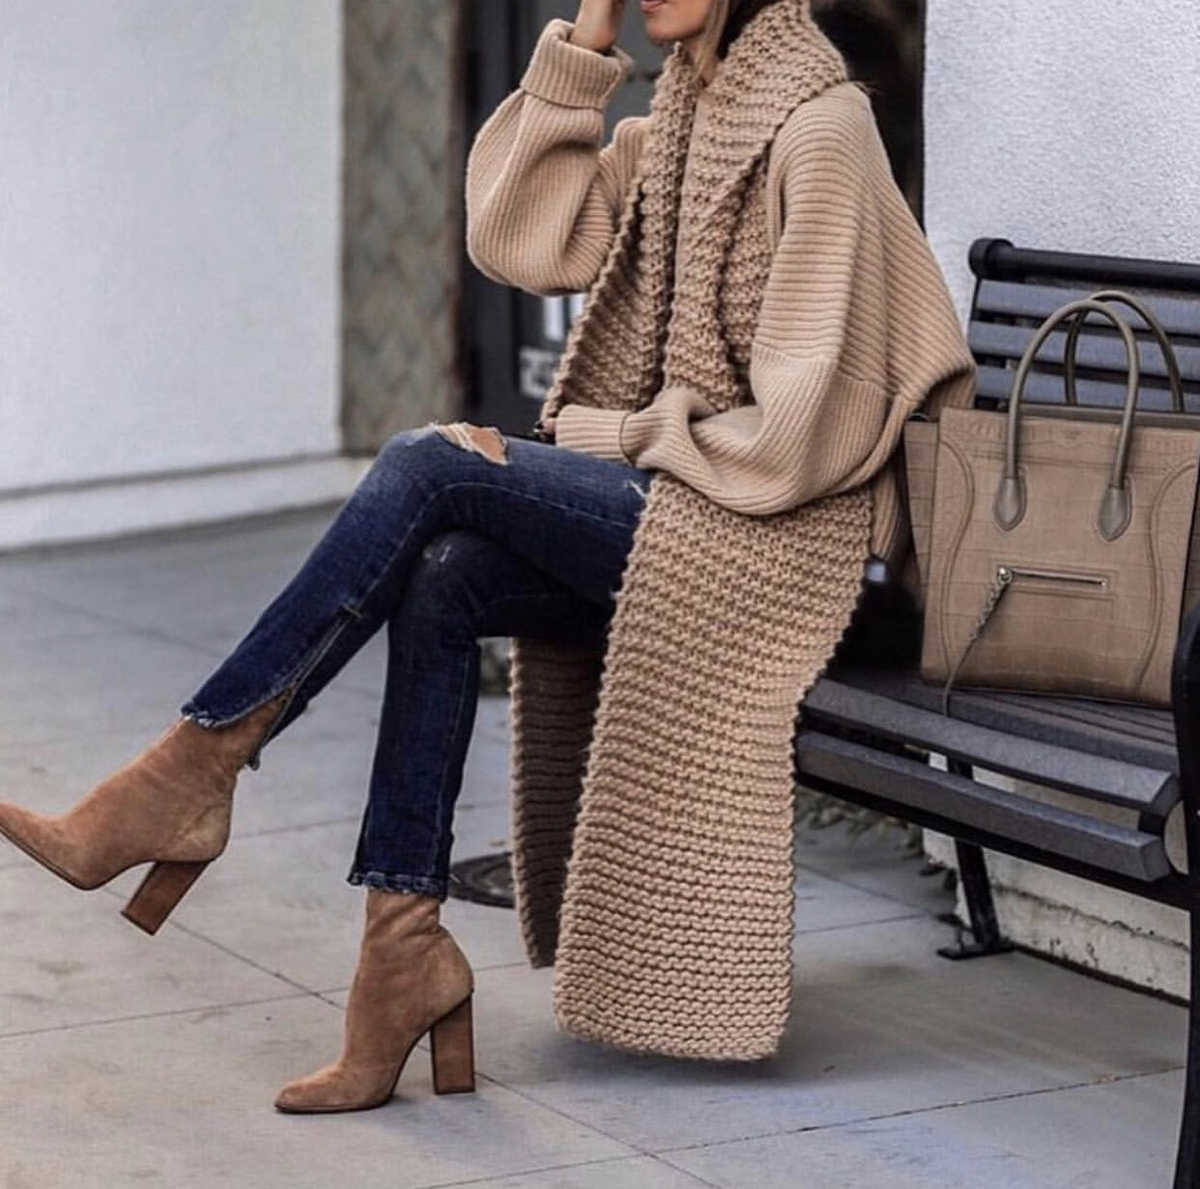 sweater styles, chic sweater styles, sweater styles of fall 2019, chunky sweater outfit, fall style inspiration, chunky knit scarf | lolario style